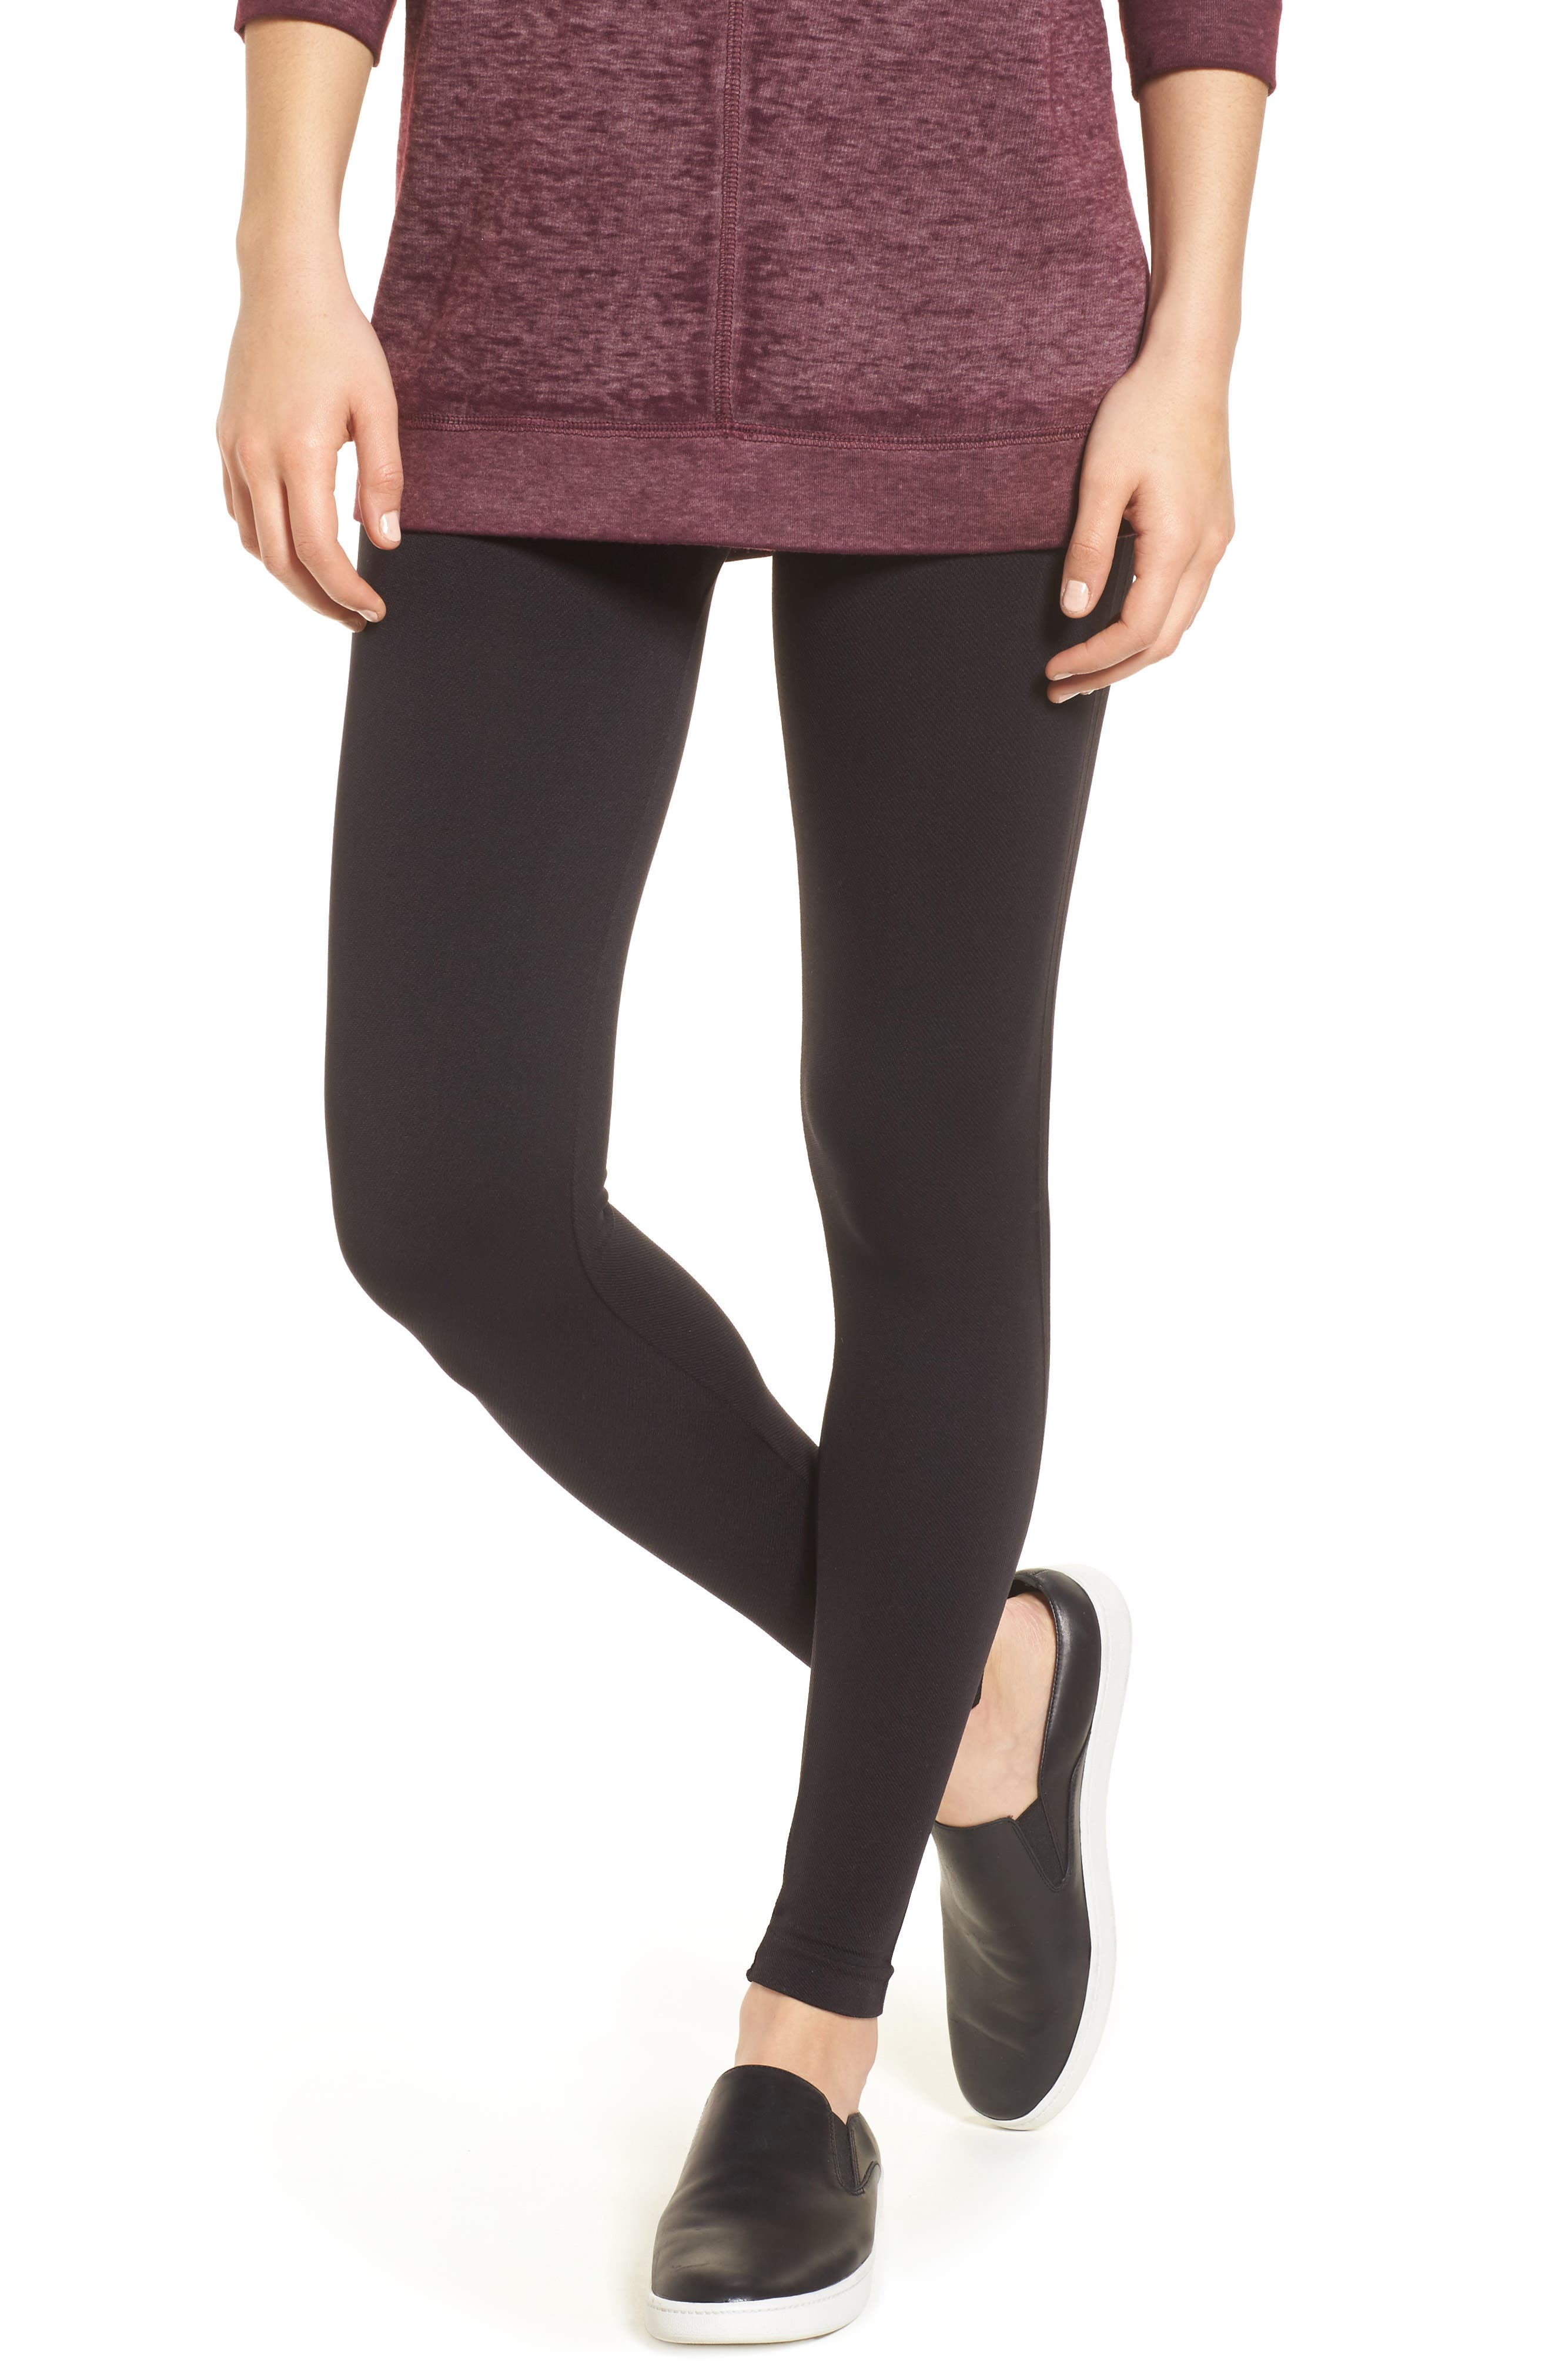 Look At Me Now High Waist Seamless Leggings,                             Main thumbnail 1, color,                             Very Black